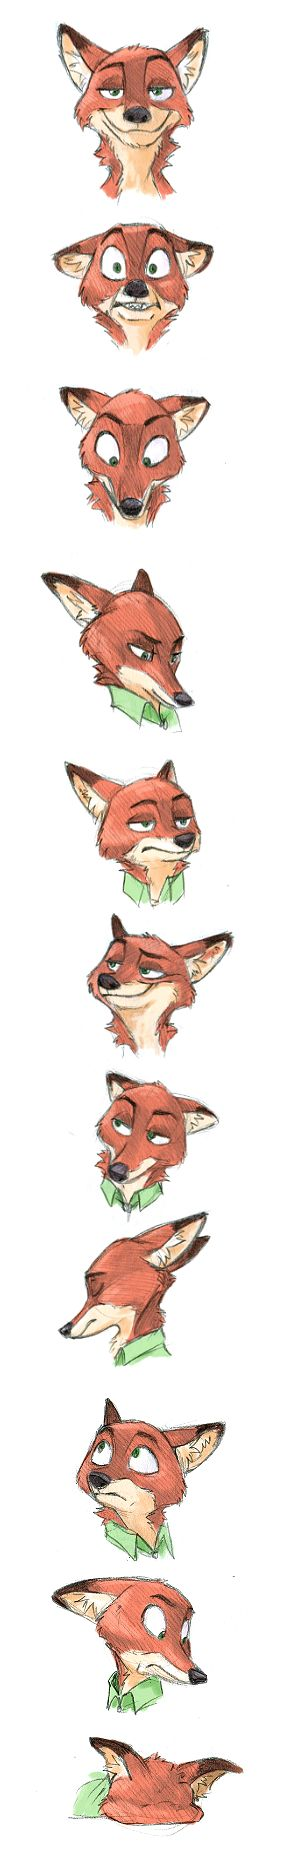 """Zootopia"" 